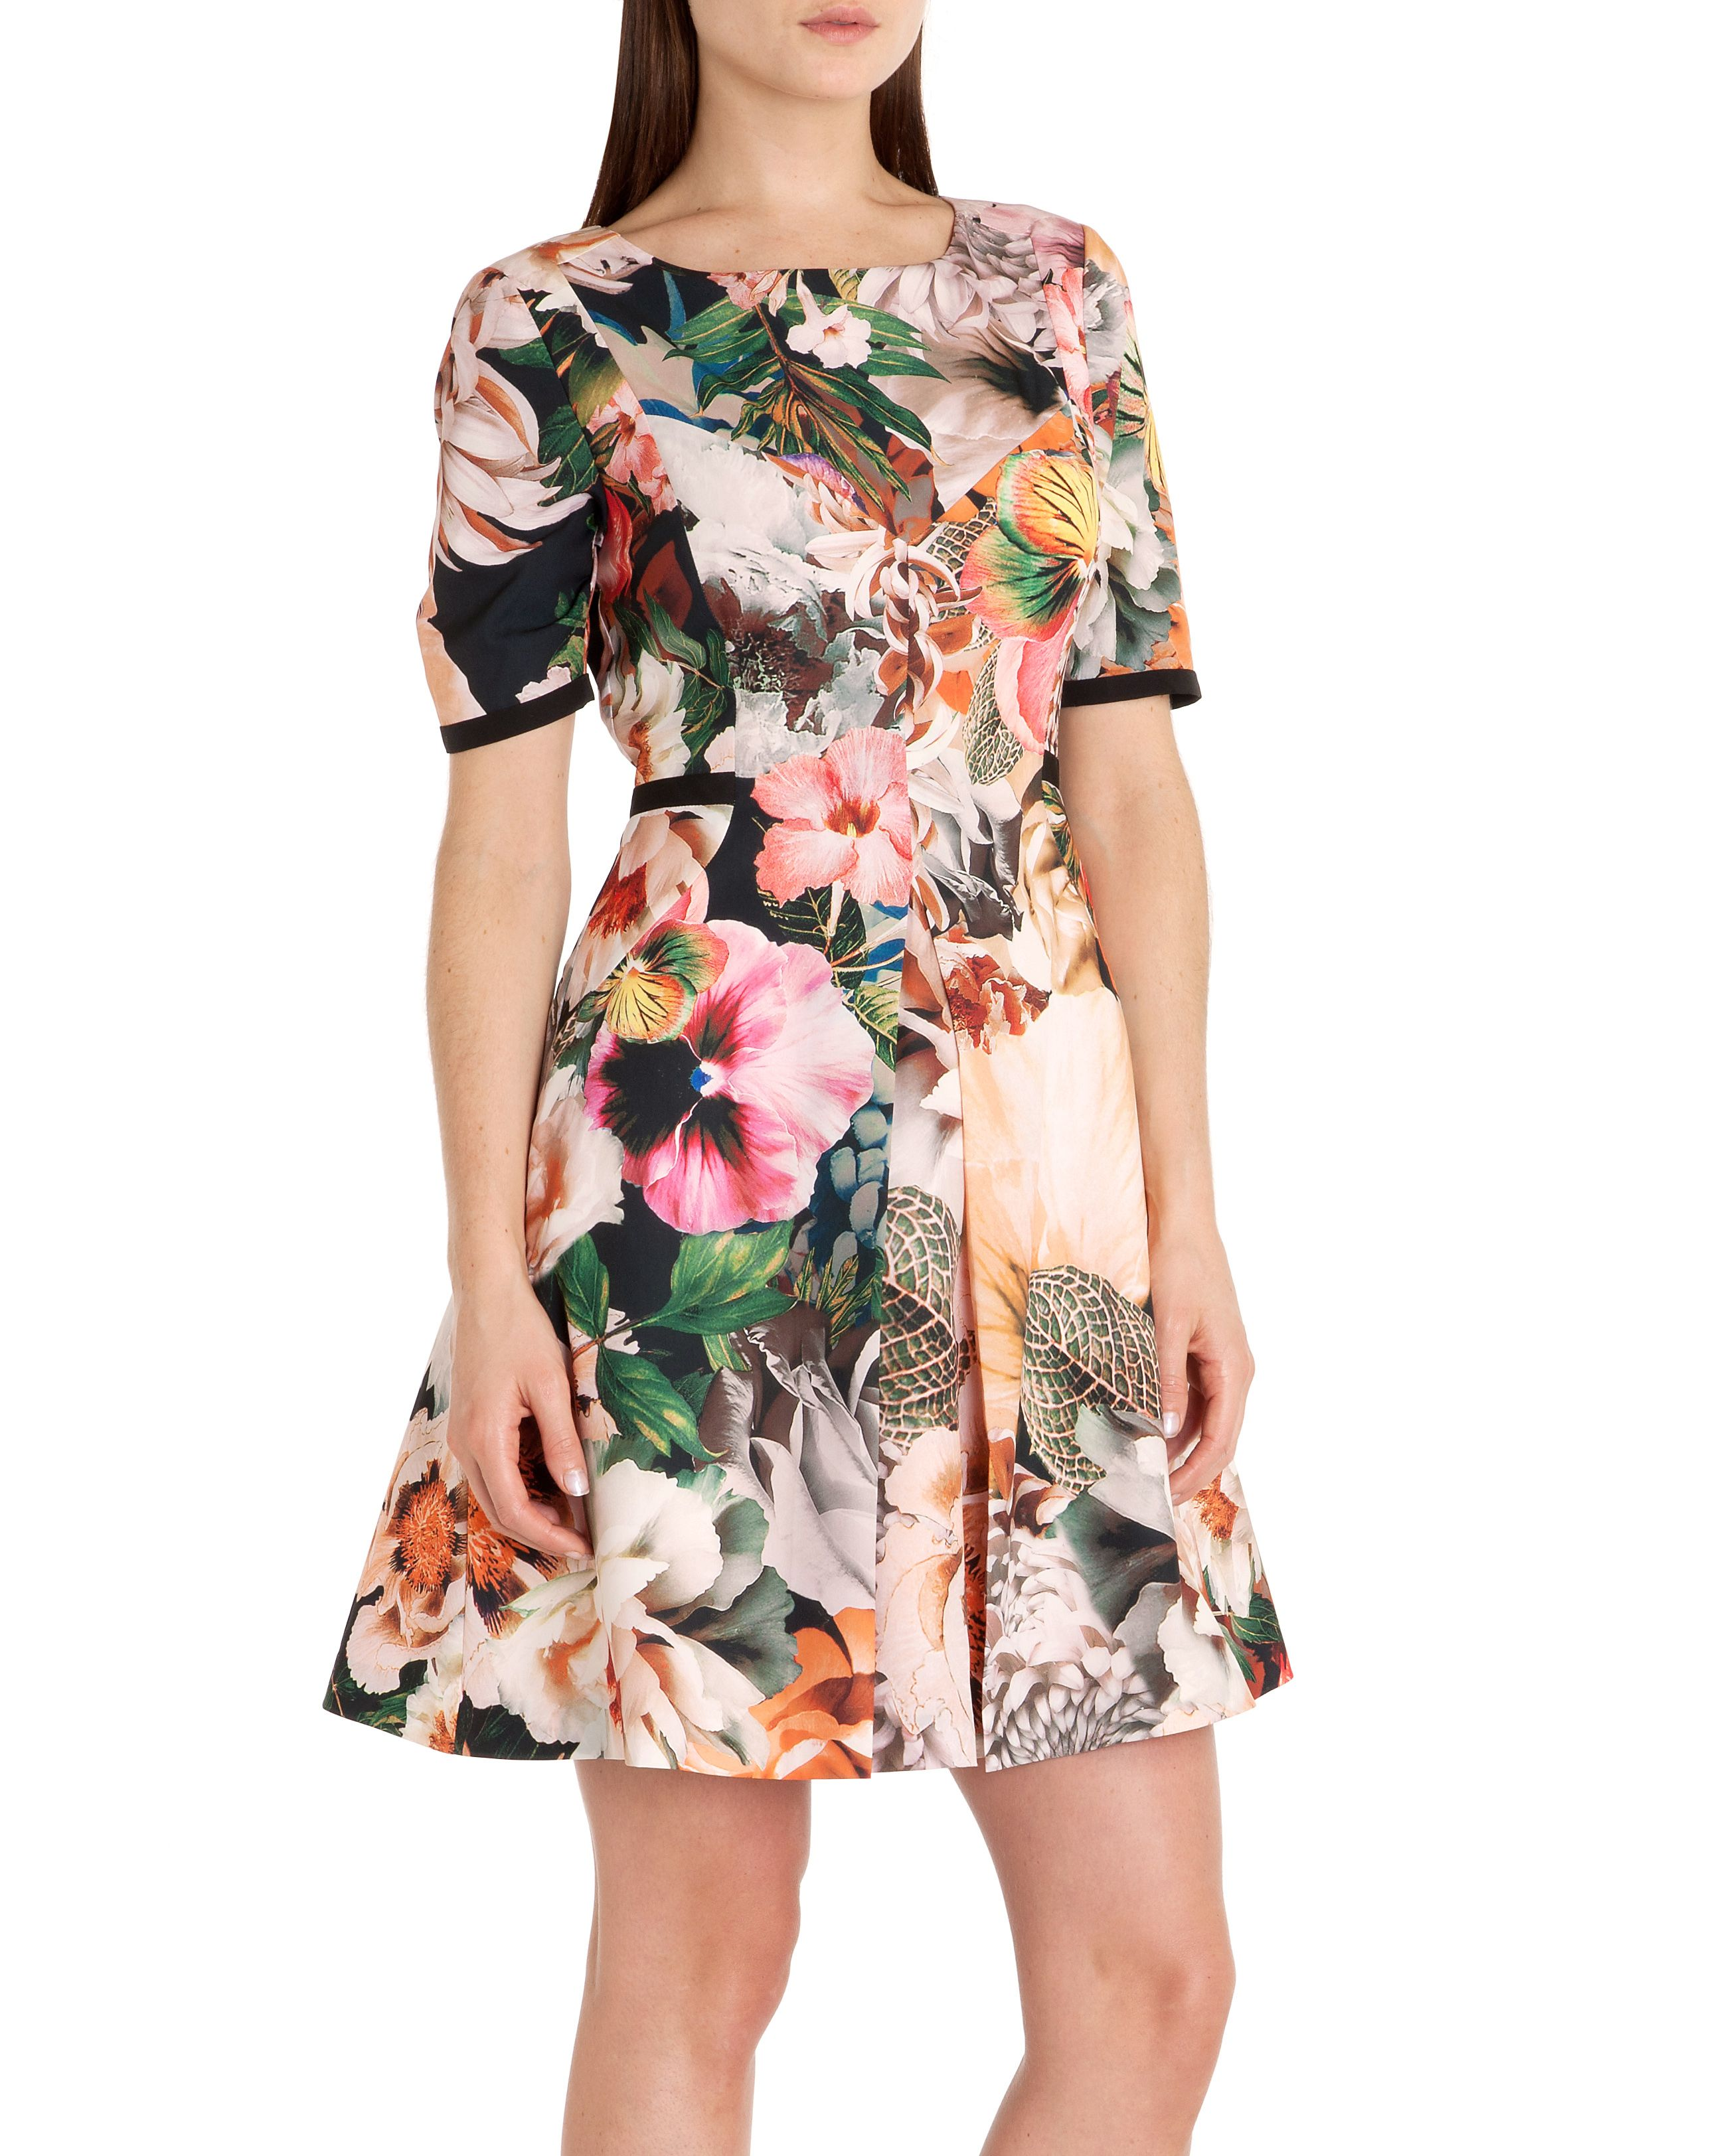 Timliaa tangled floral print dress